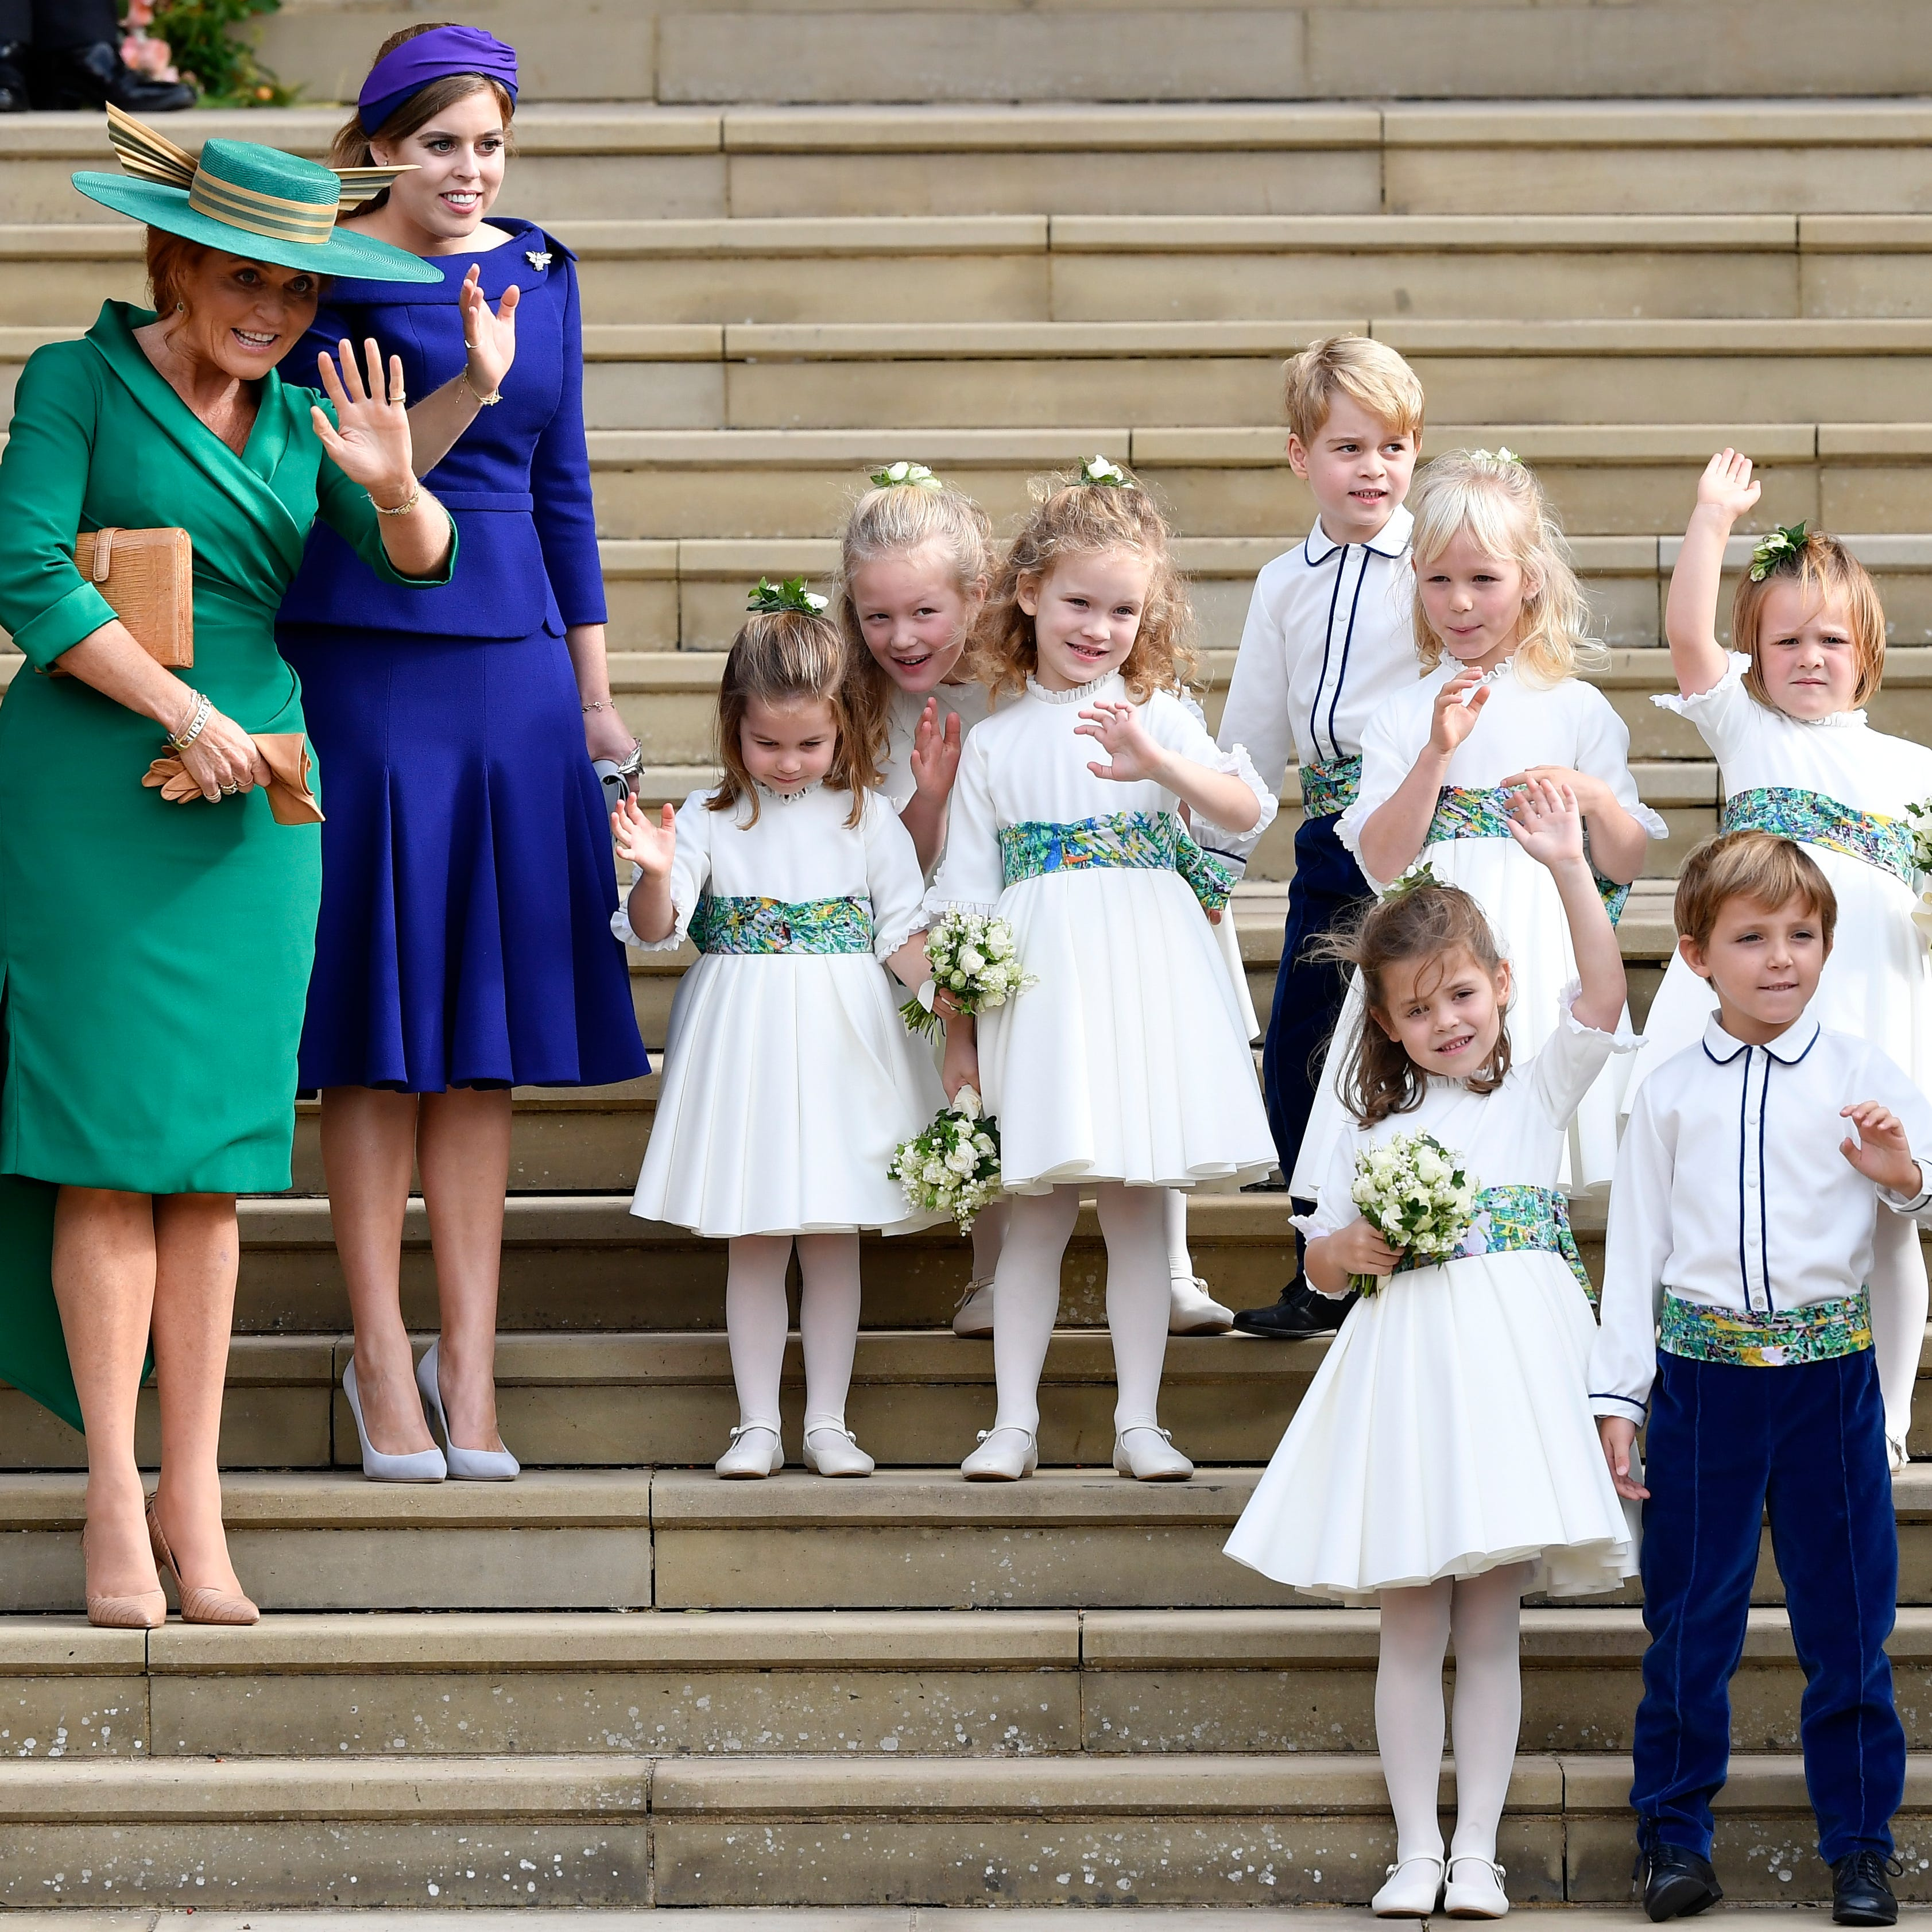 Sarah Ferguson and Princess Beatrice, the bridesmaids and page boys, wave after the wedding of Princess Eugenie of York and Jack Brooksbank on Oct. 12, 2018.